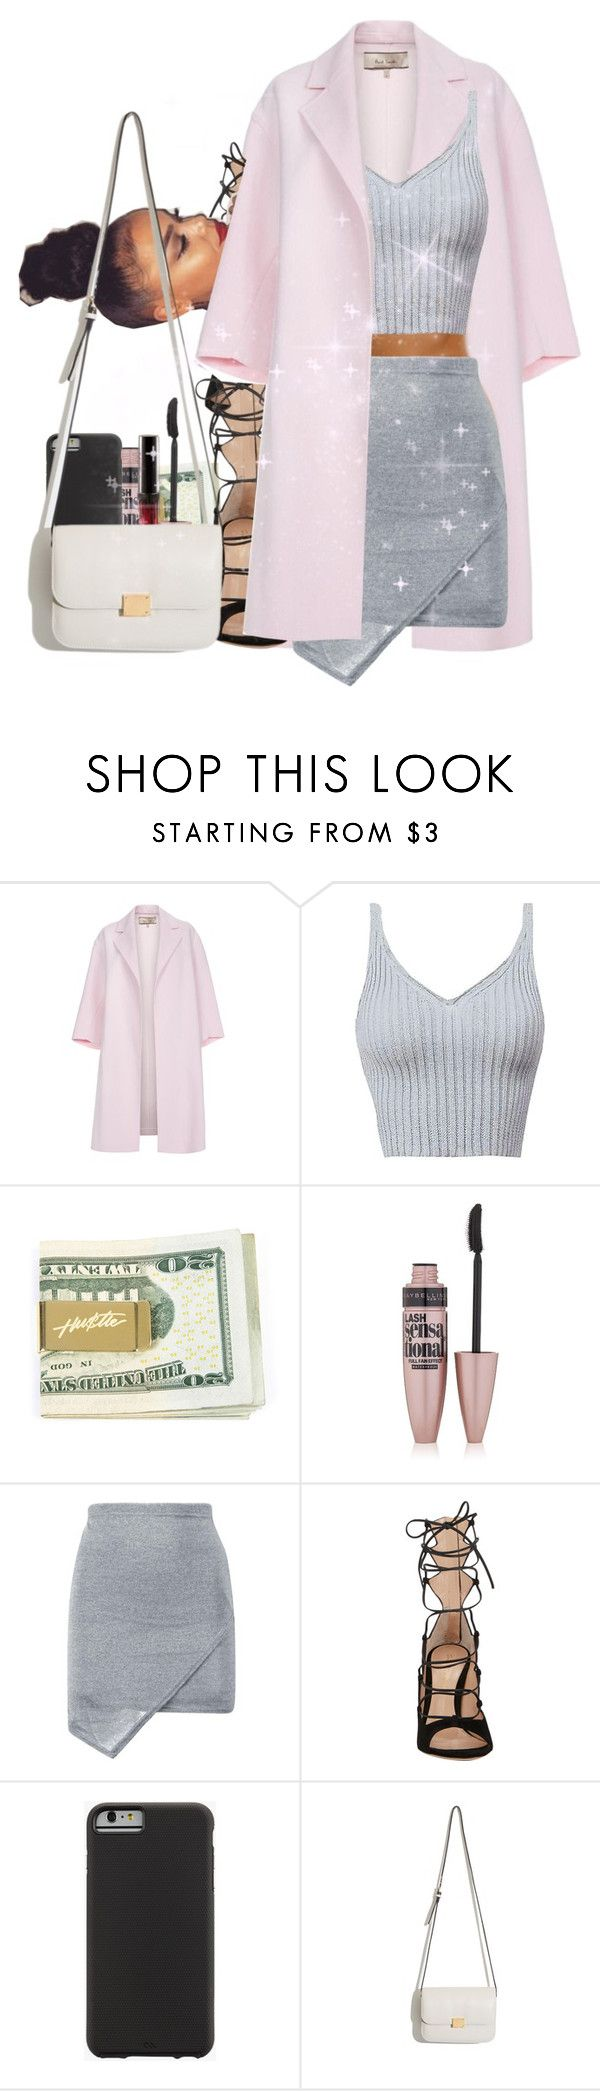 """rewards"" by bfamily ❤ liked on Polyvore featuring Paul Smith, Maybelline, Gianvito Rossi and Case-Mate"